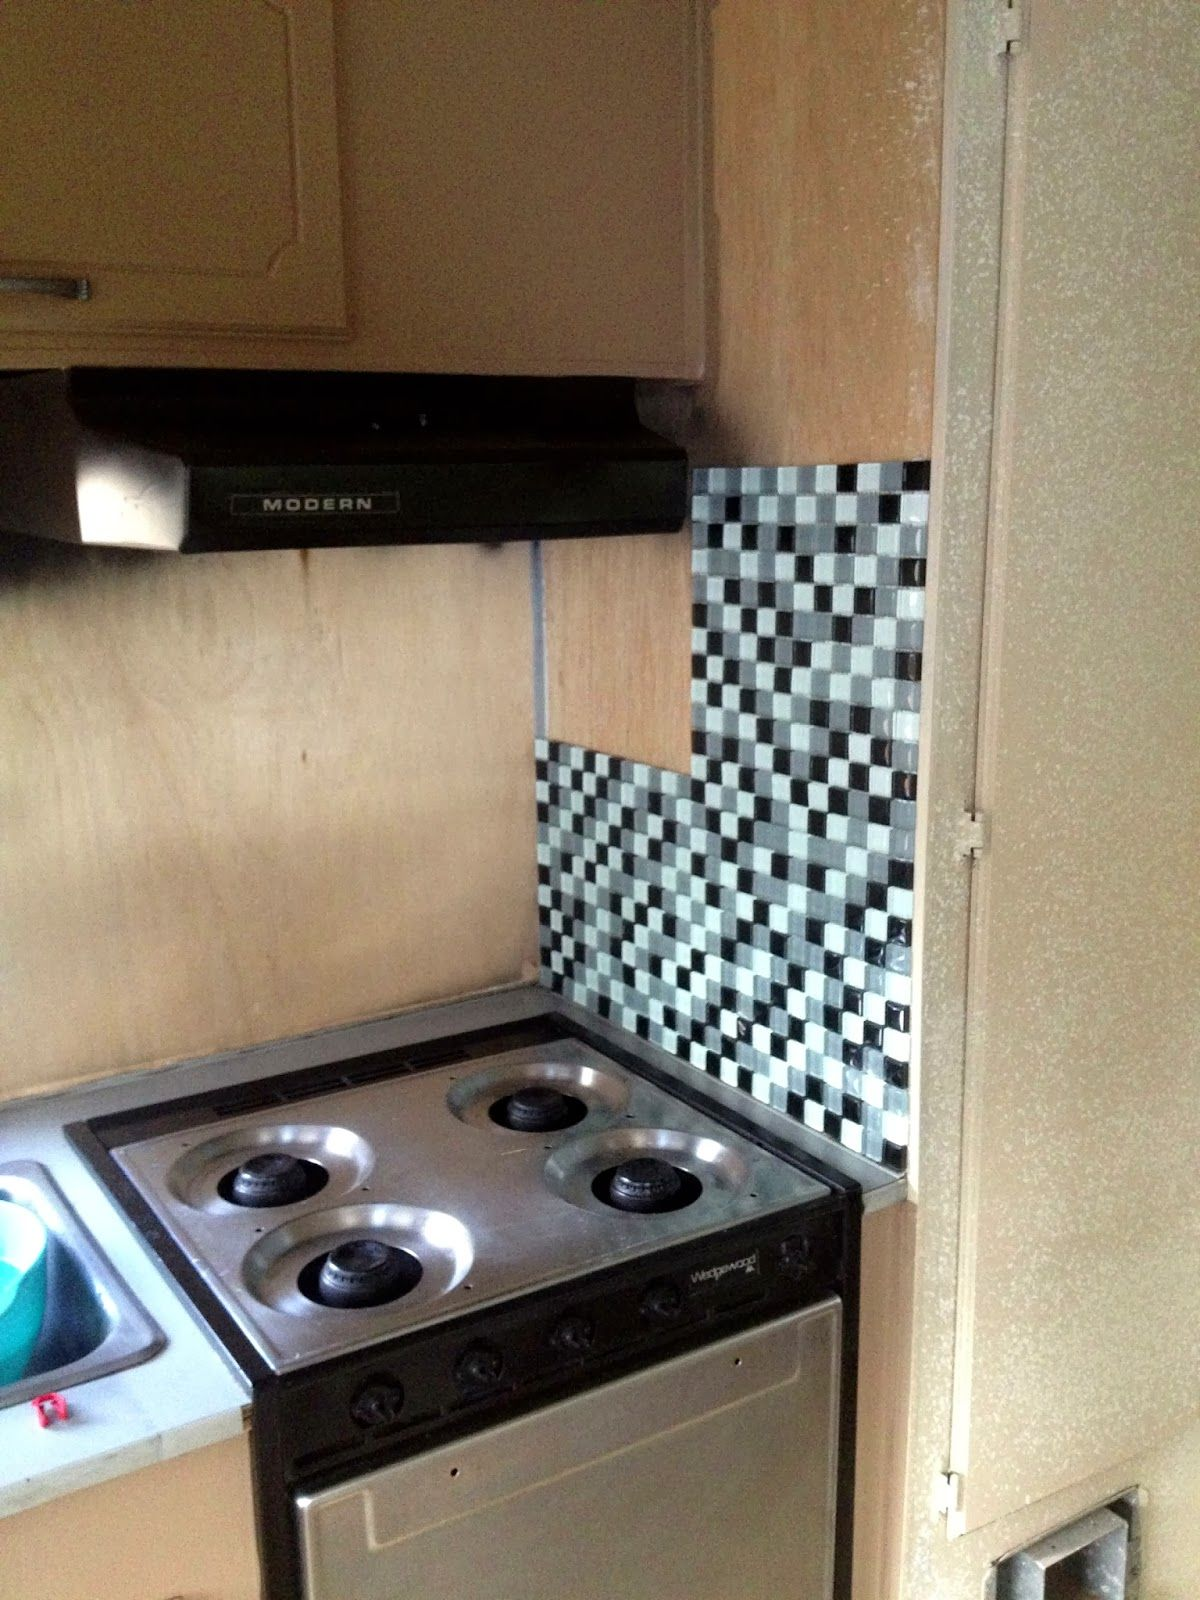 Rv propane oven and stove  For tile, apply with adhesive on